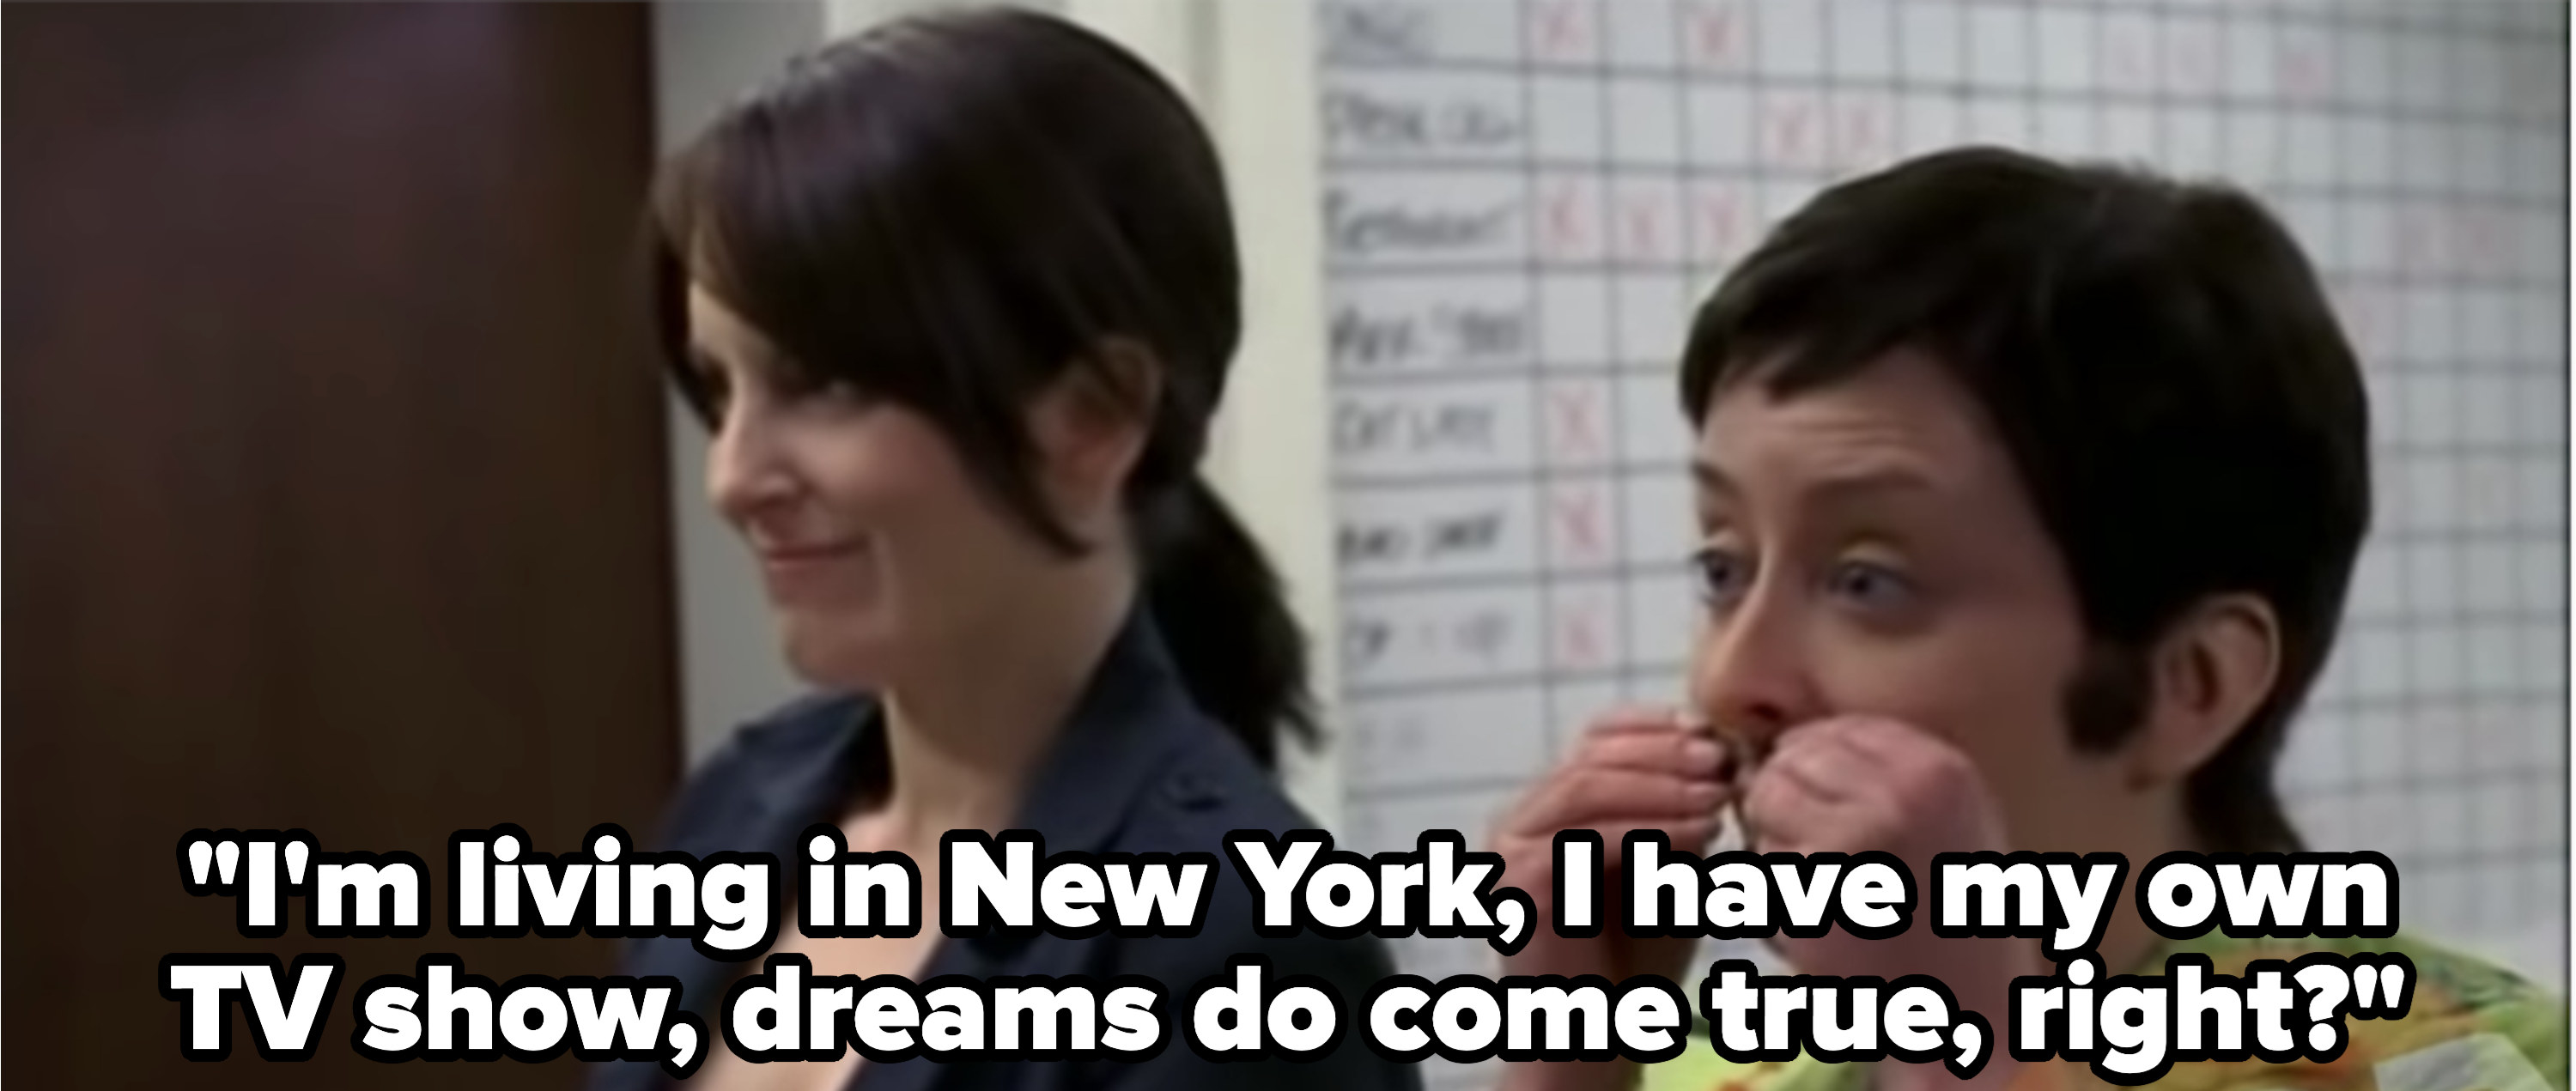 """Dratch as Jenna says """"I'm living in New York, I have my own TV show, dreams do come true, right?"""""""